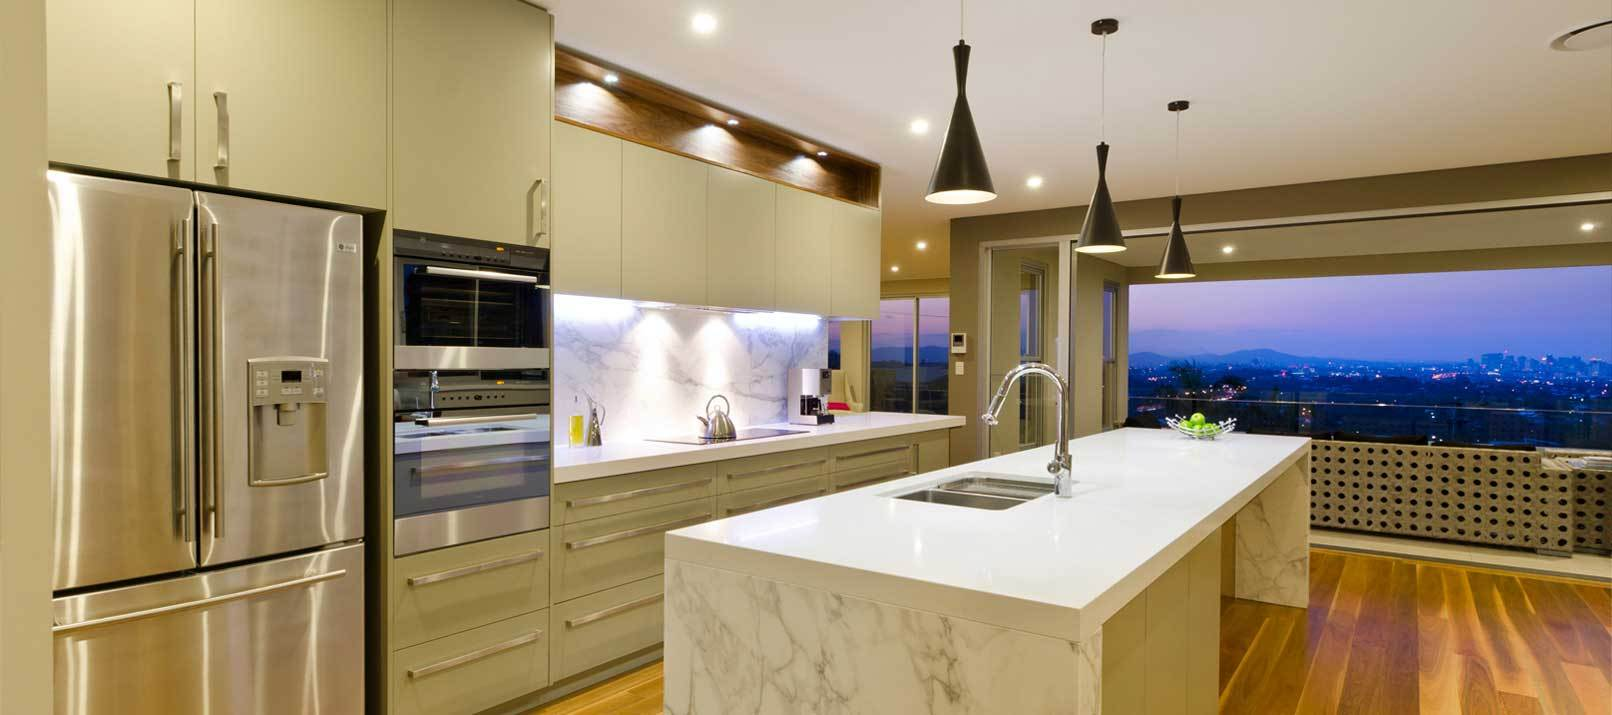 Best New Kitchen Techs To Add To Your Remodeling Plan